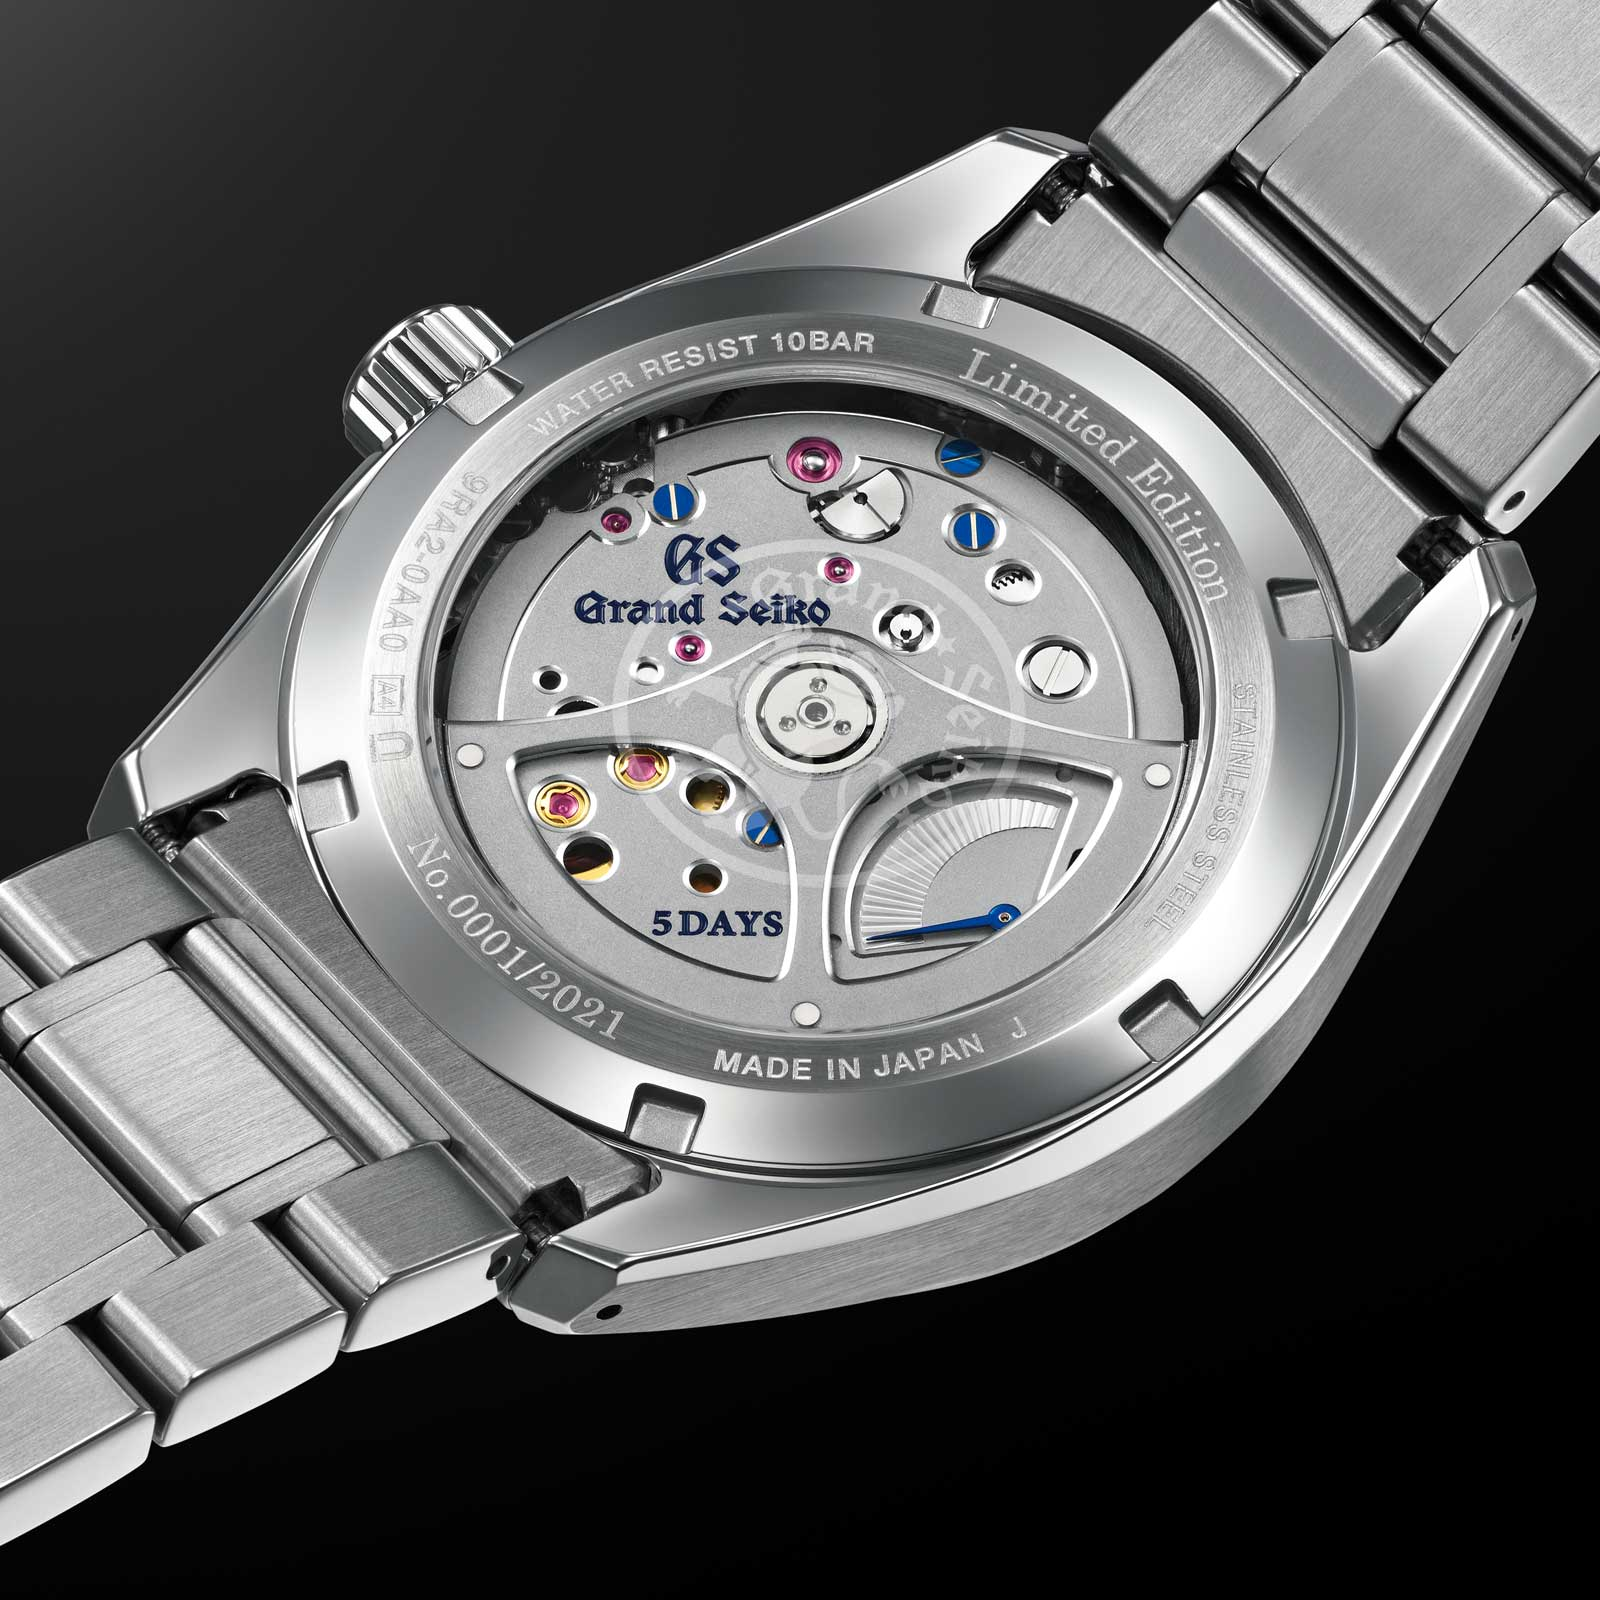 Grand Seiko Spring Drive 5 Days 9RA2 Caliber with power reserve indicator on the movement side of the watch.